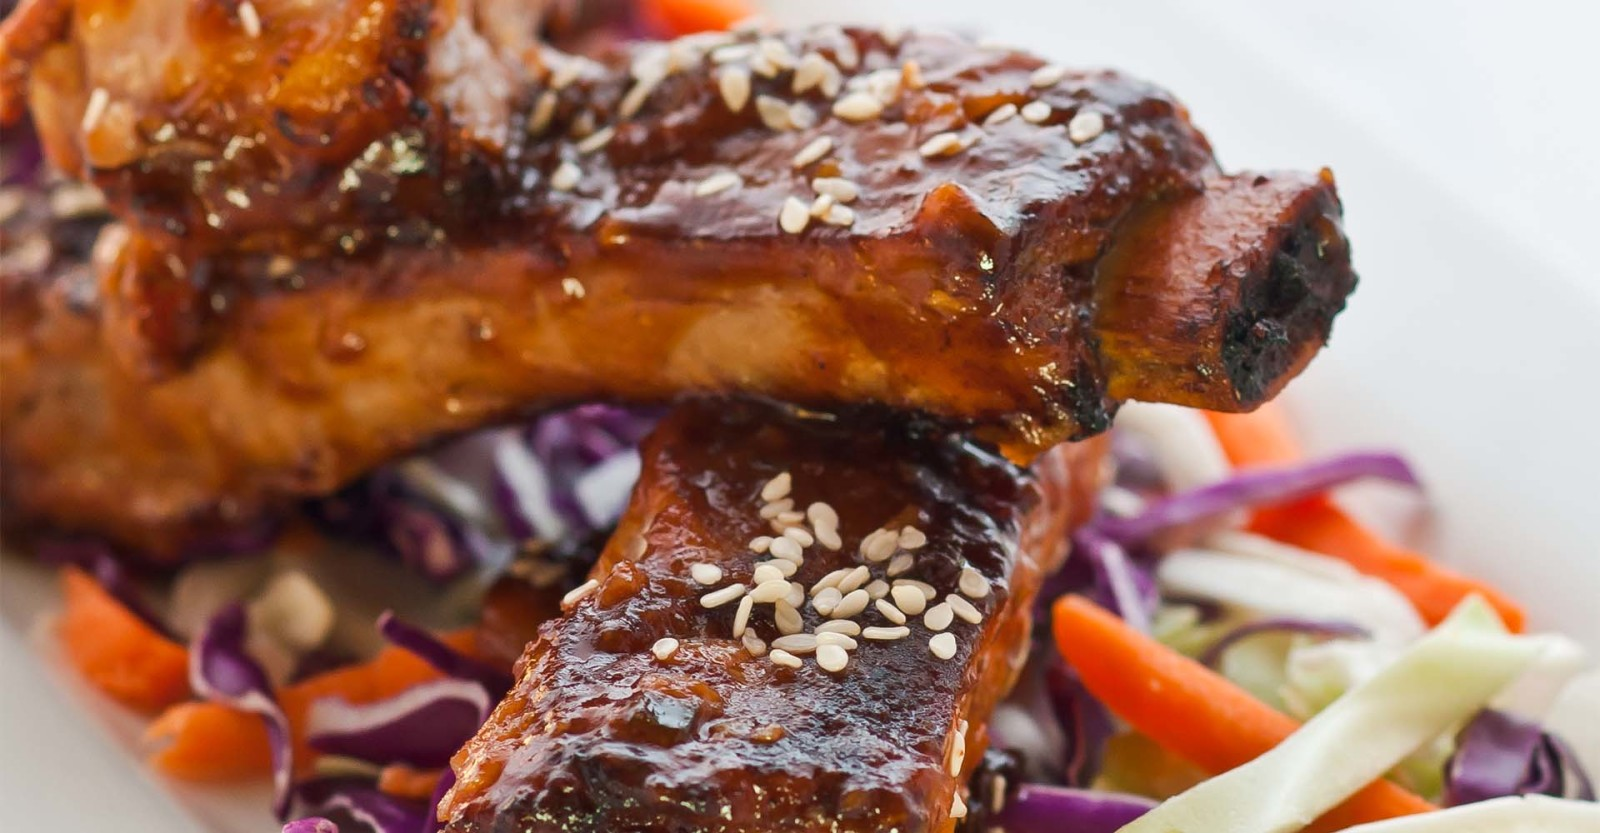 Oven-Roasted Ribs with Hoisin Barbecue Sauce Primary Image